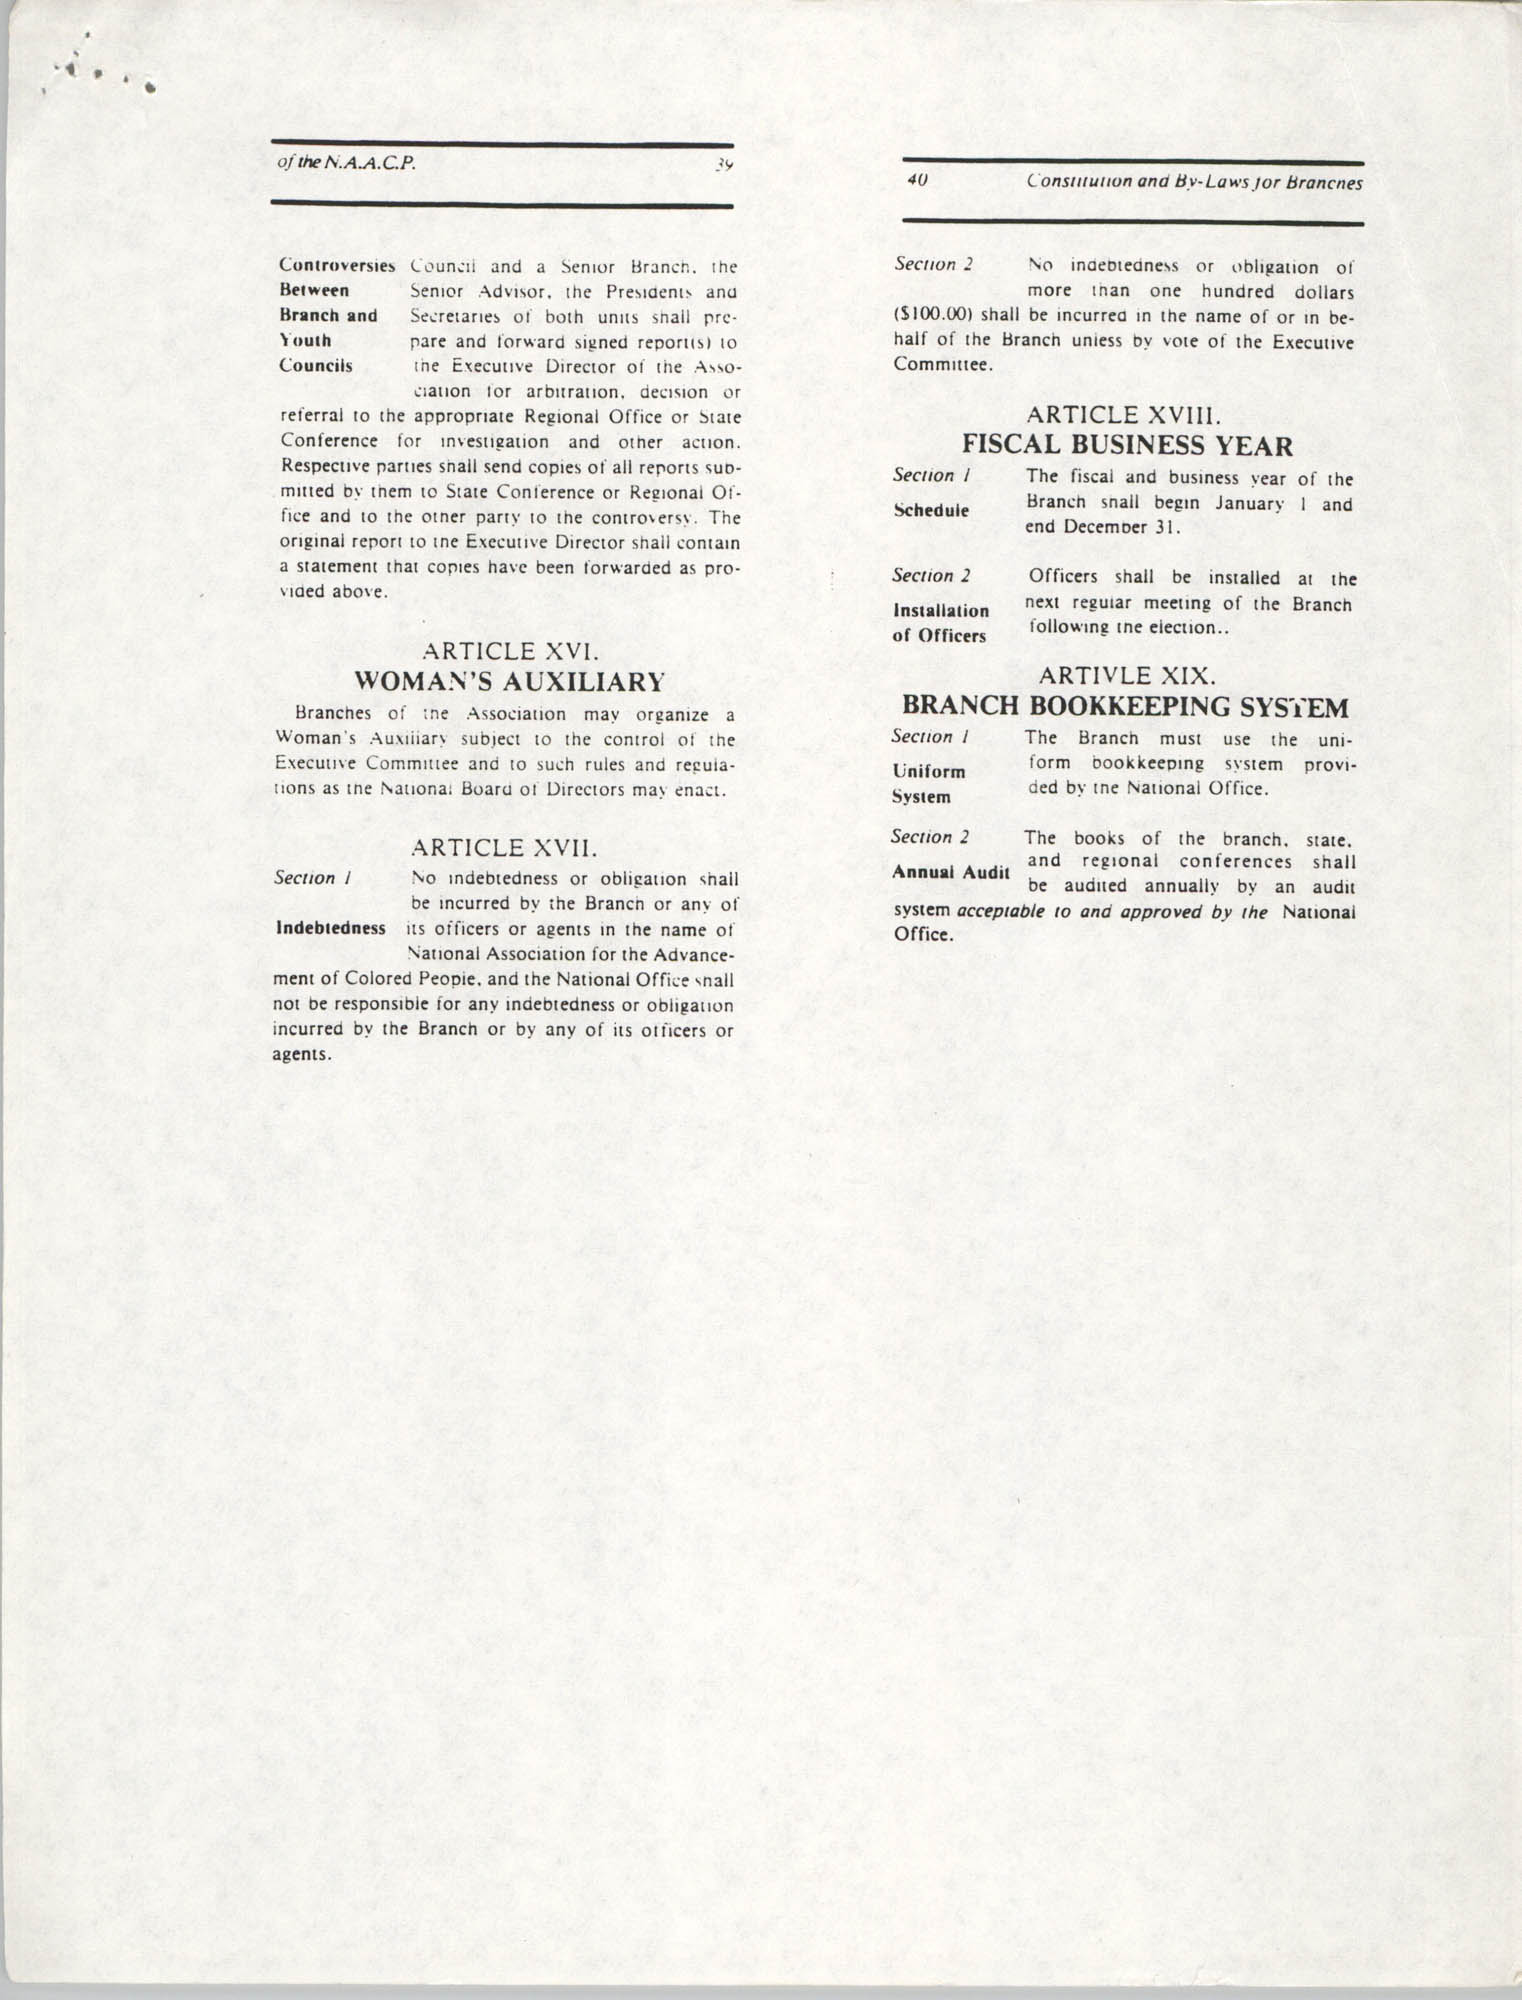 Constitution and By-Laws for Branches of the NAACP, May 1988, Pages 39-40